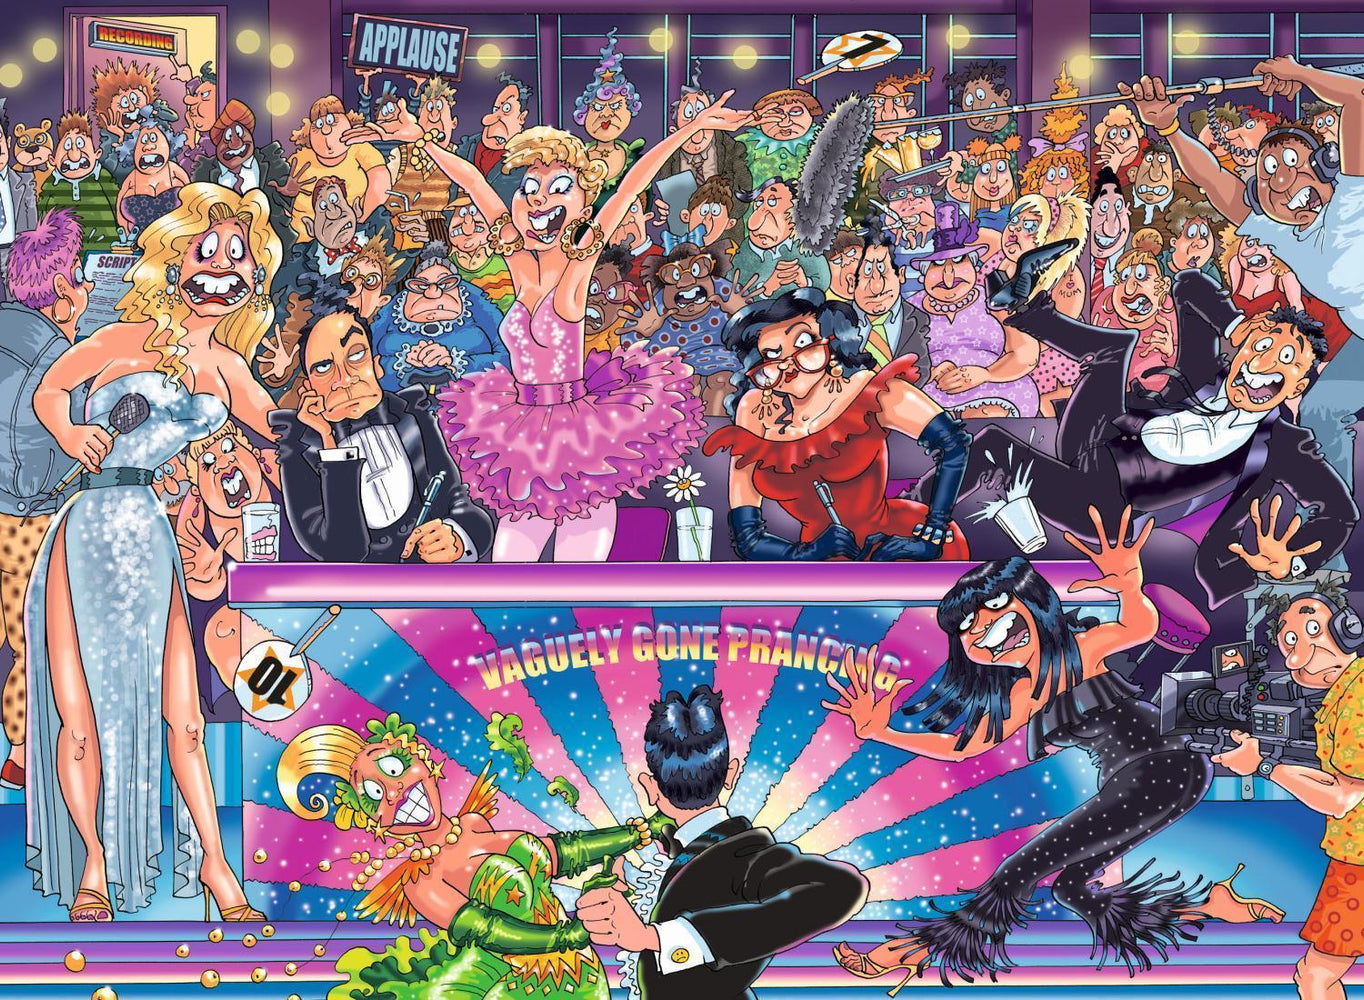 Wasgij Original 30 Strictly Can't Dance 1000 piece jigsaw puzzle - All Jigsaw Puzzles